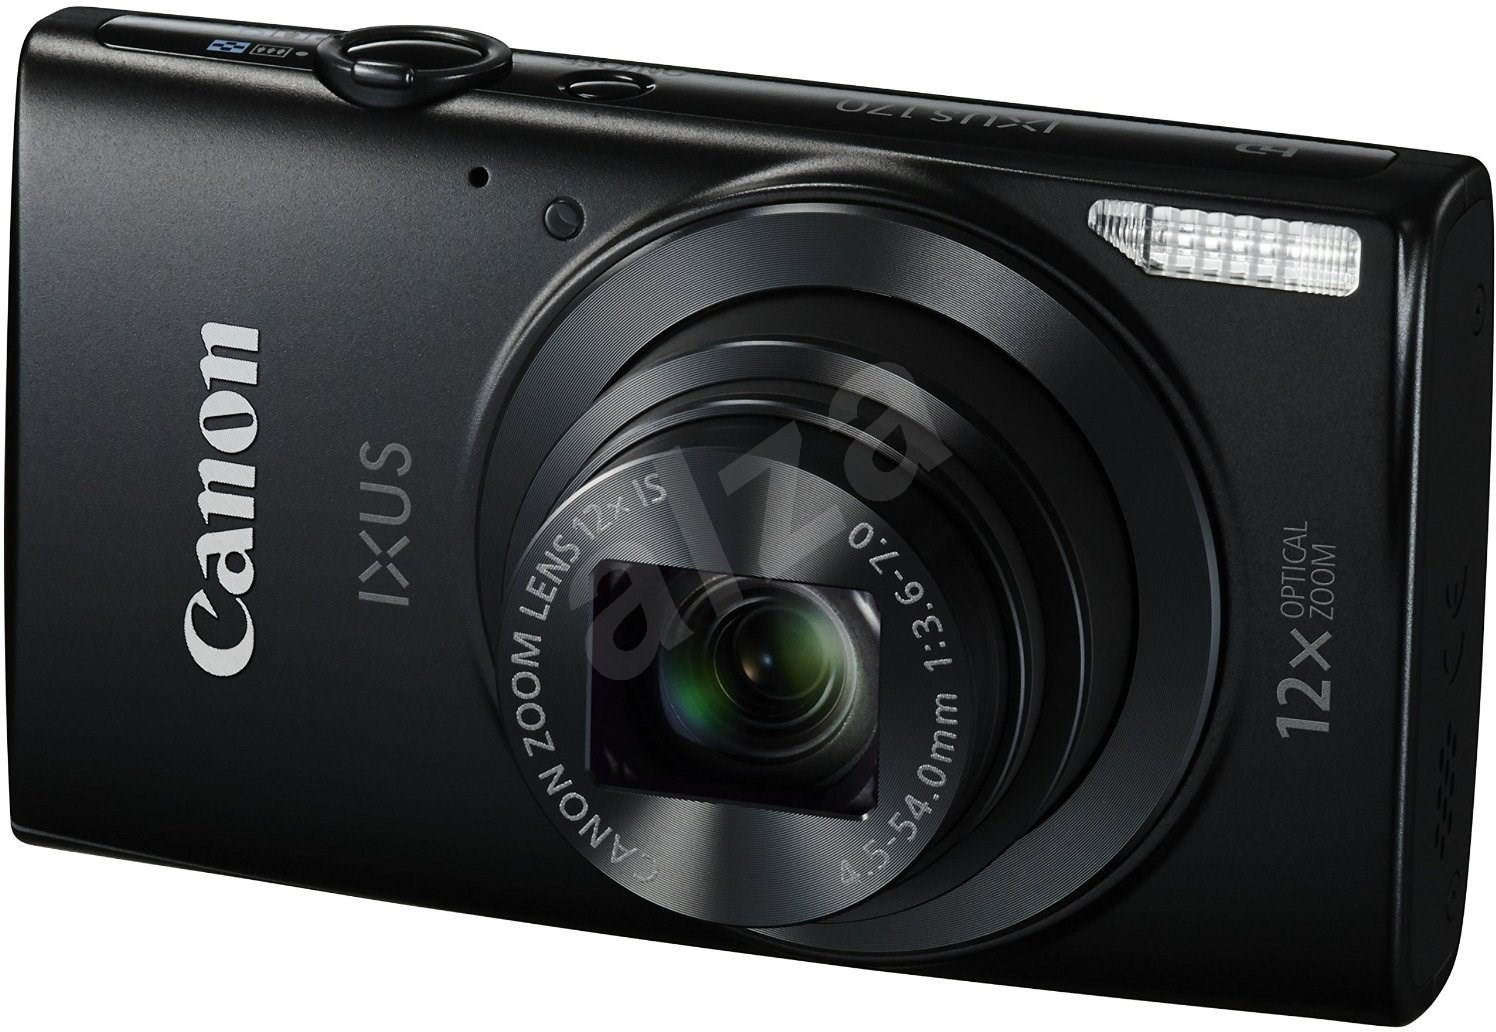 canon ixus 170 black digital camera. Black Bedroom Furniture Sets. Home Design Ideas